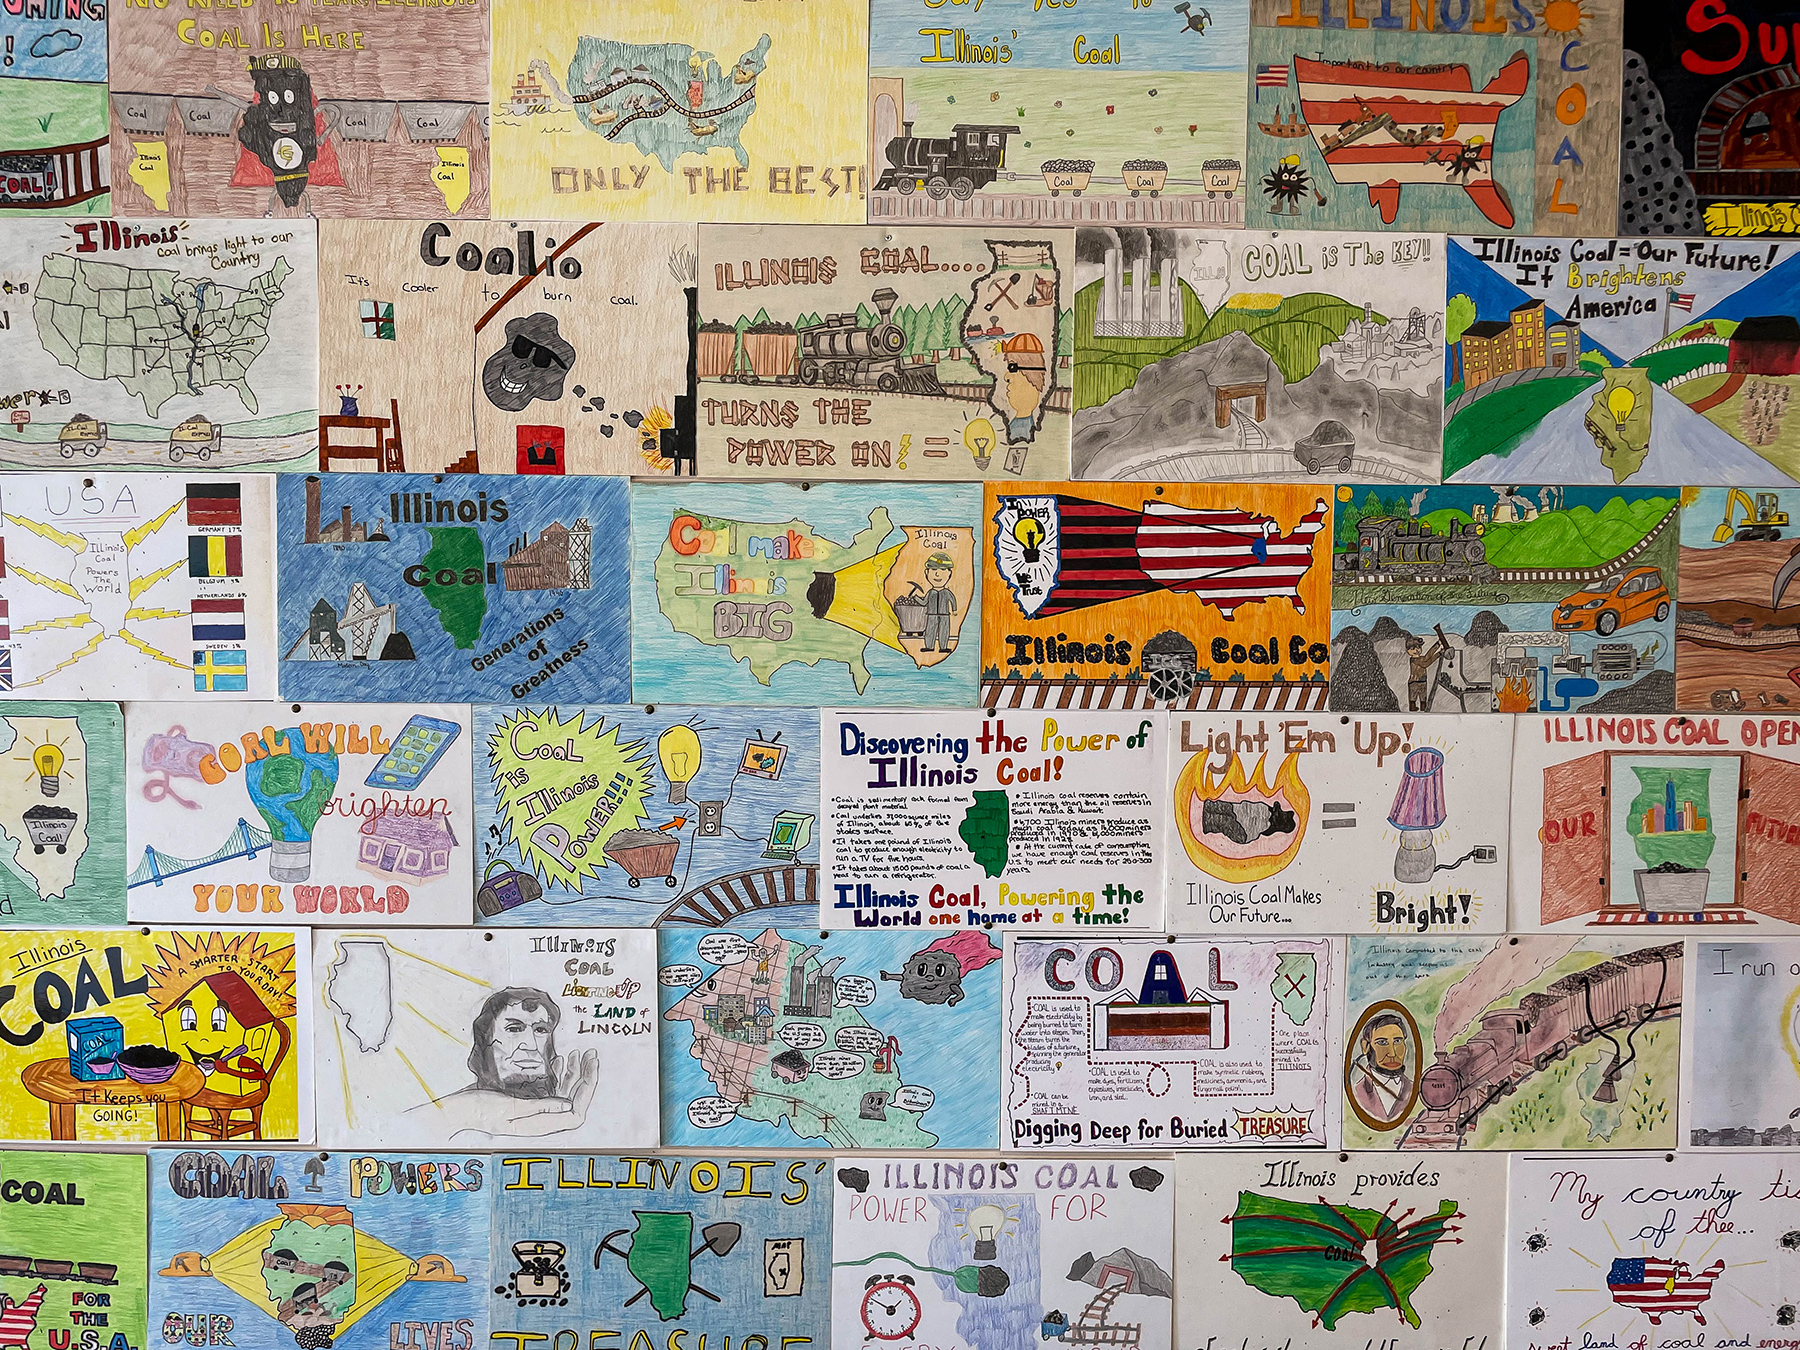 children's drawings displayed at the Illinois Coal Museum